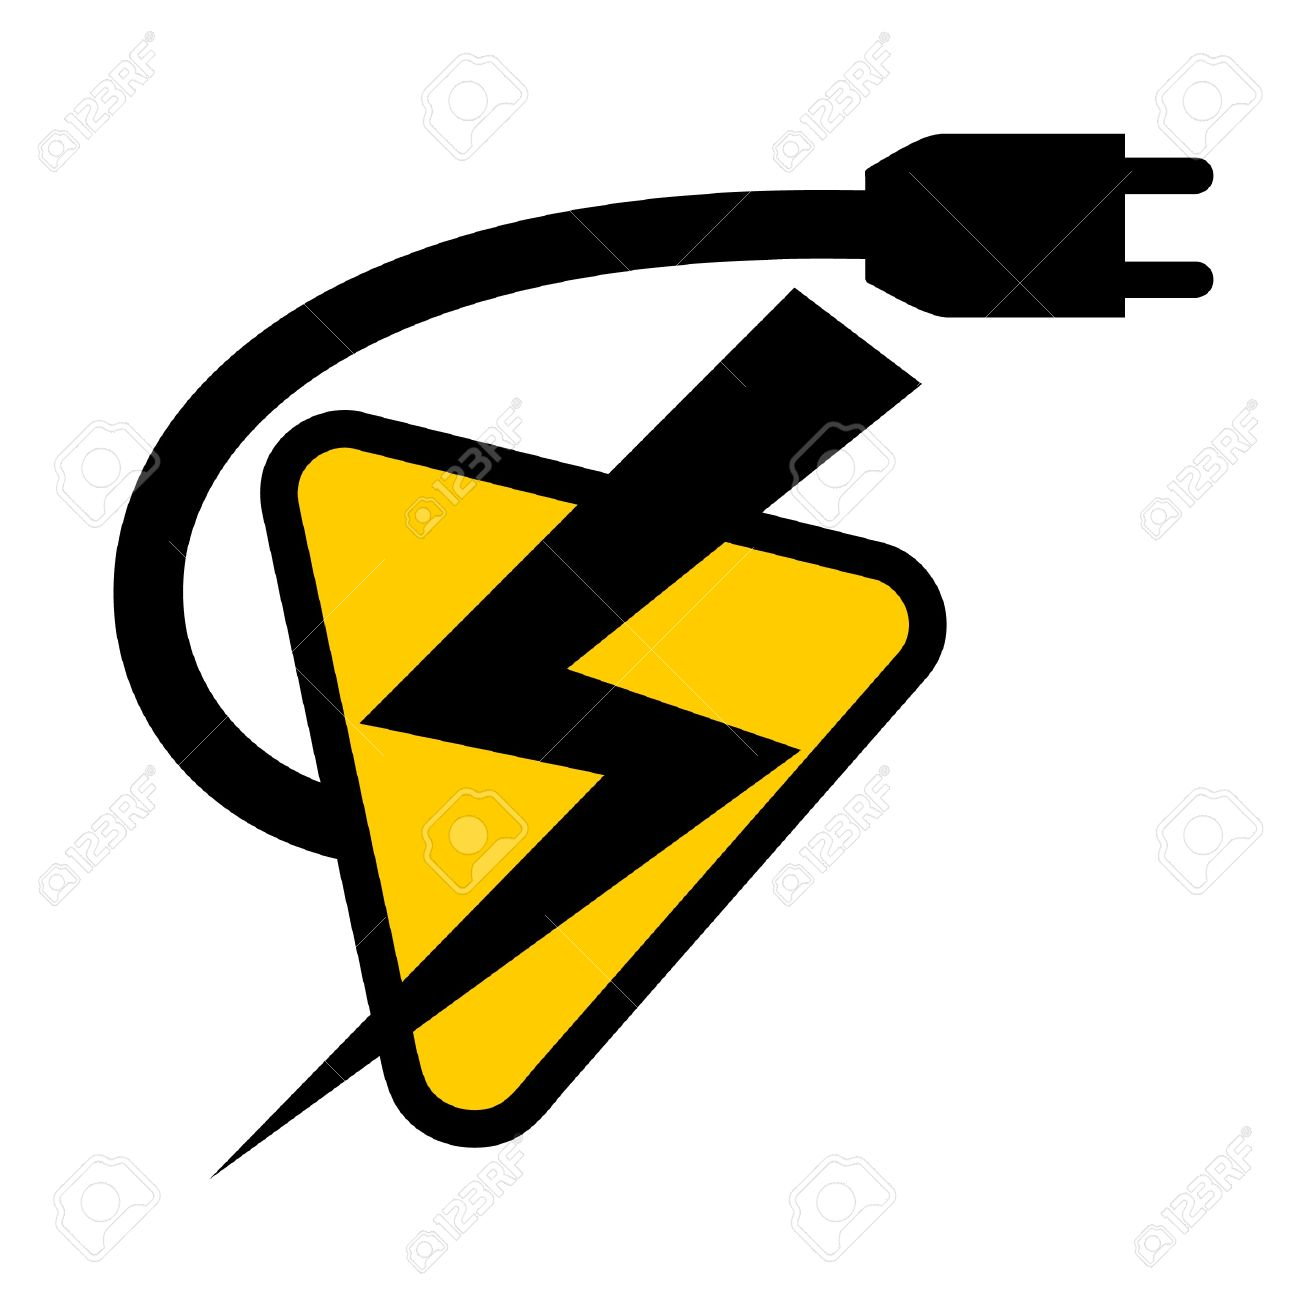 Electricity clipart. Free download best